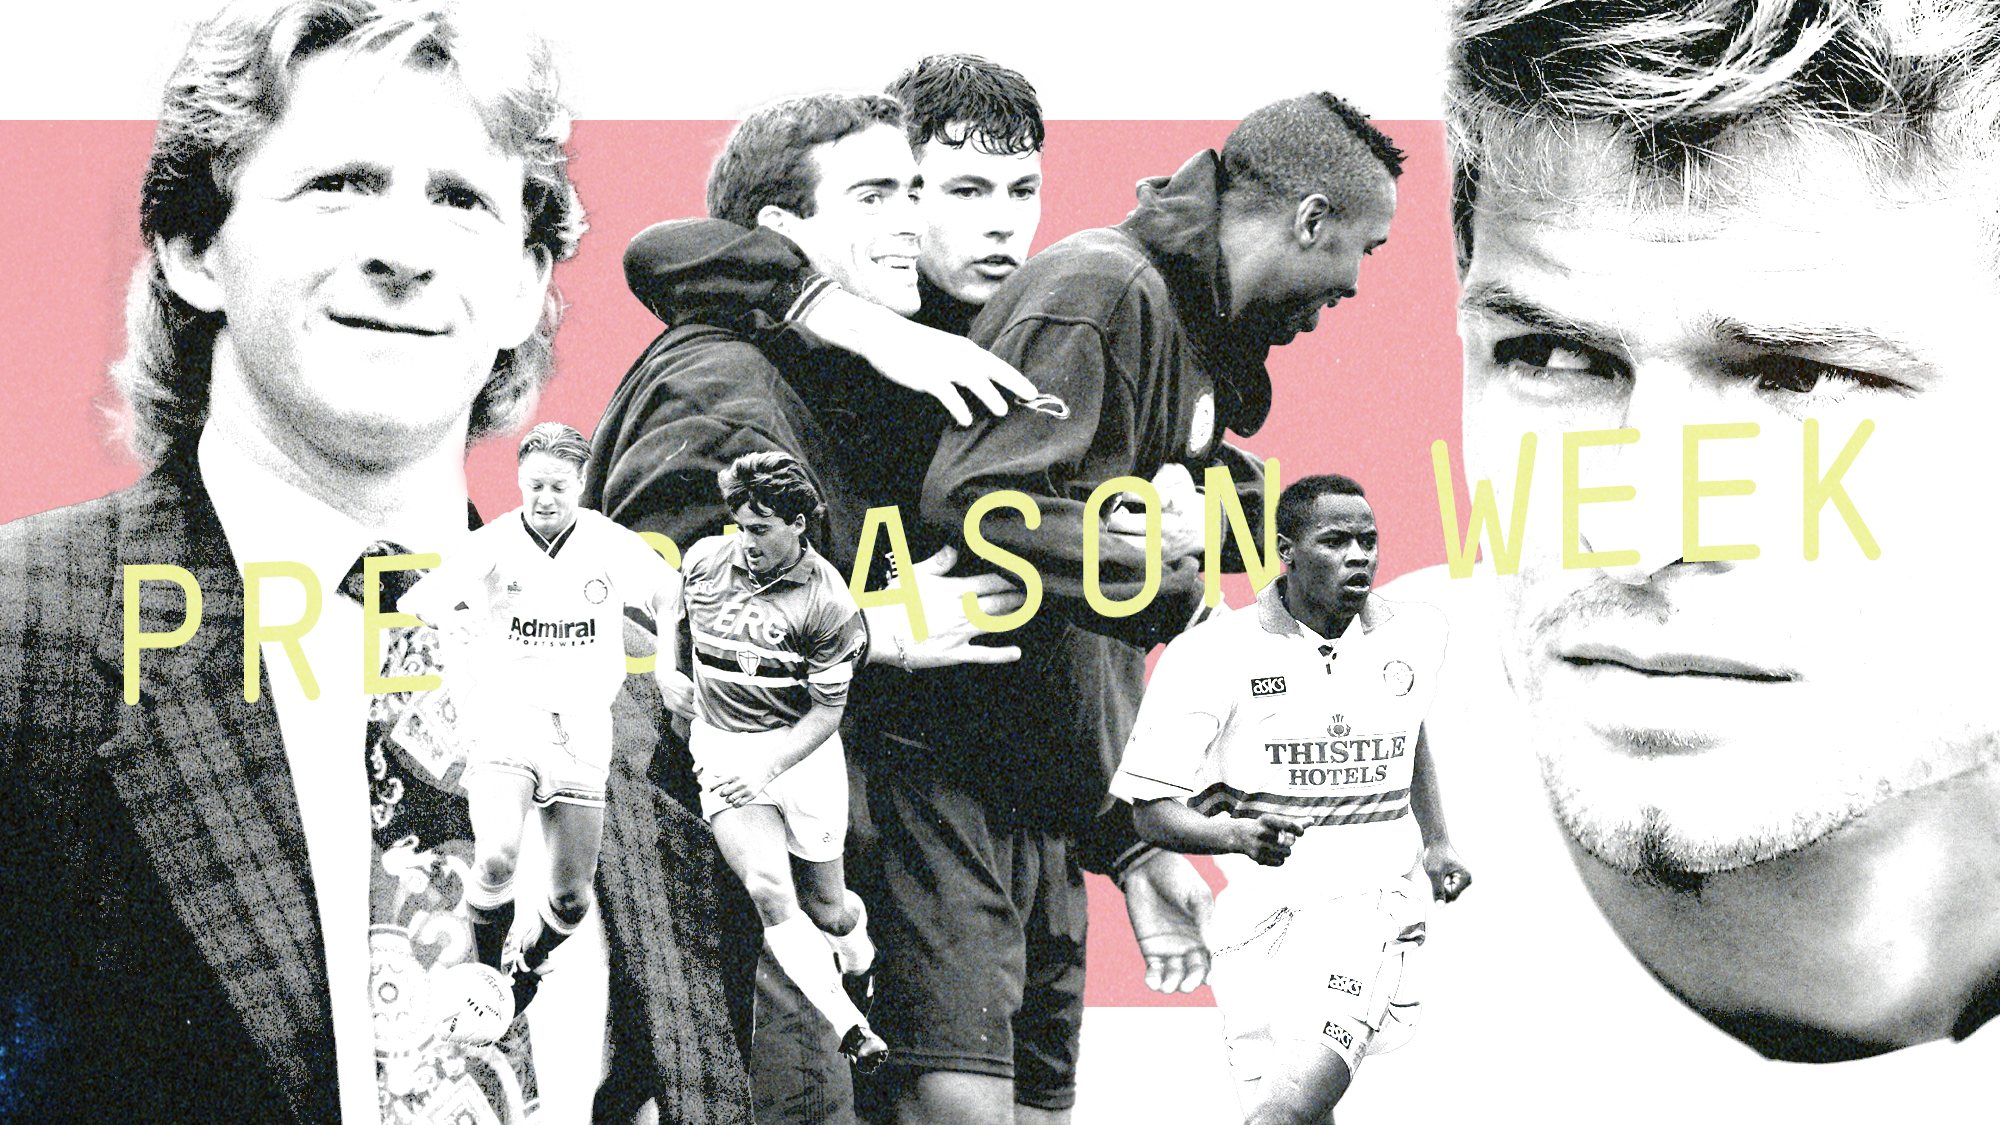 A collage of Leeds players including Strachan, Batty, Masinga, Harte and Beckham — not that one